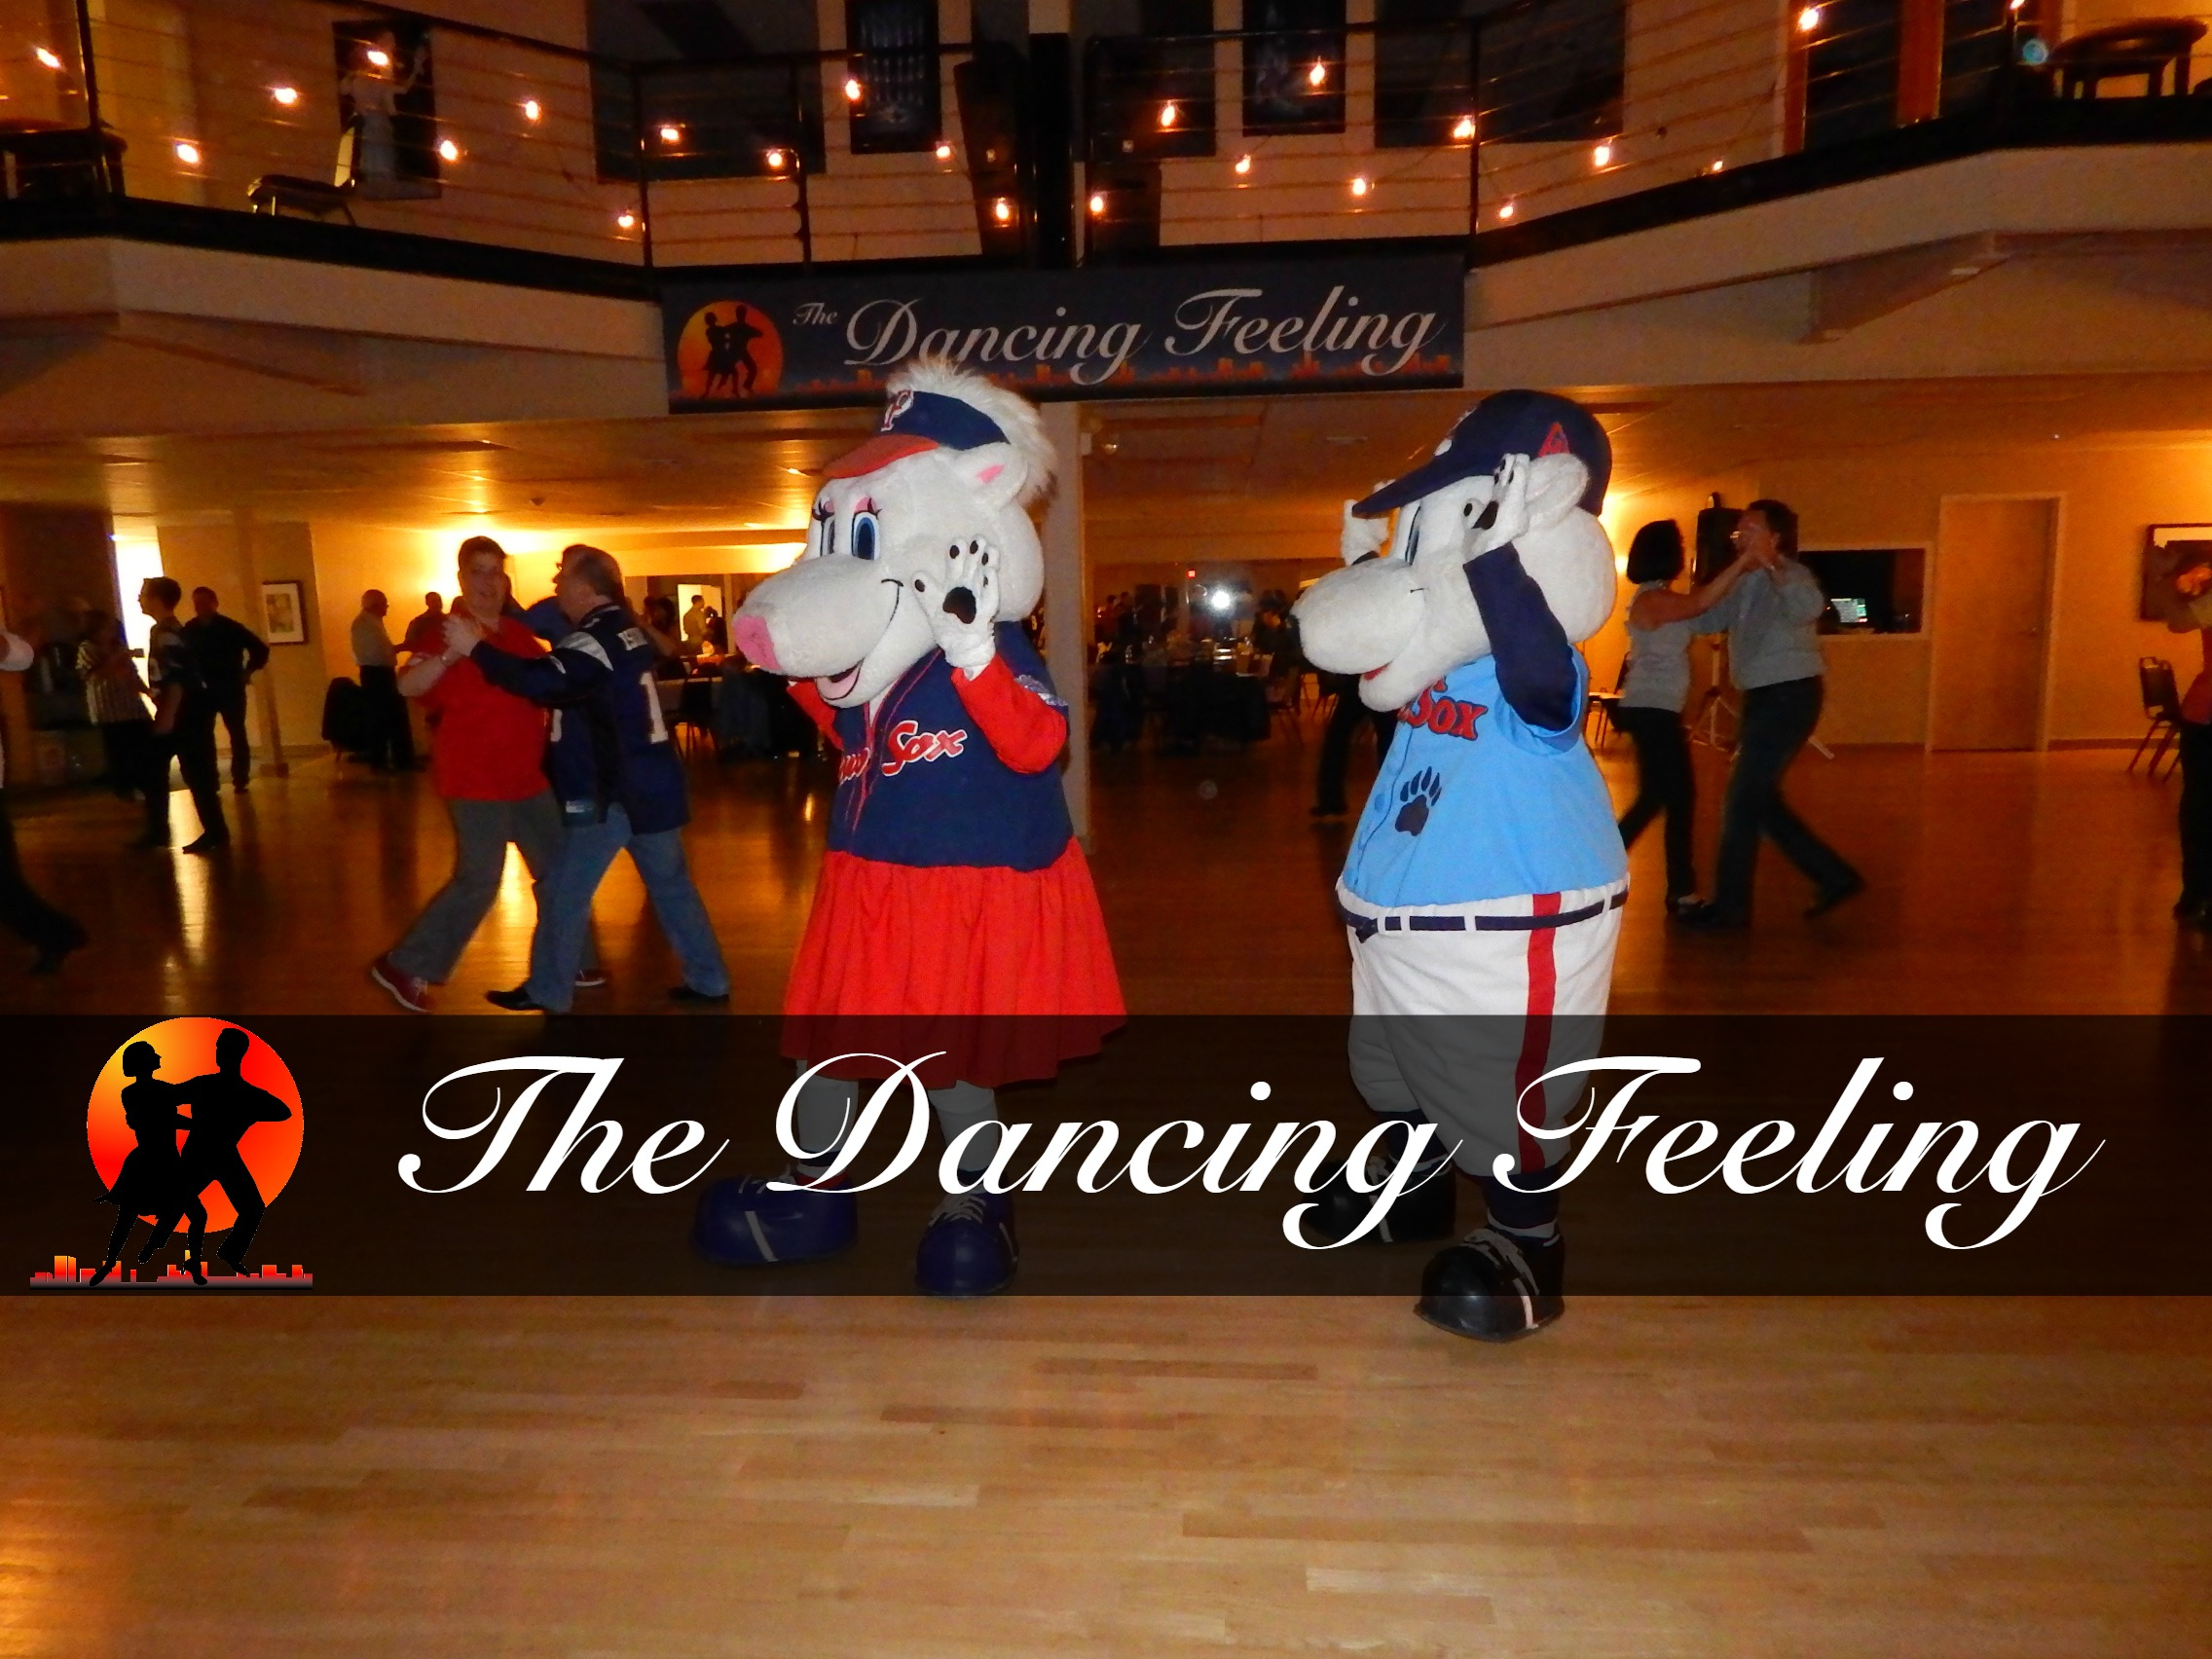 The Dancing Feeling Spring Fling